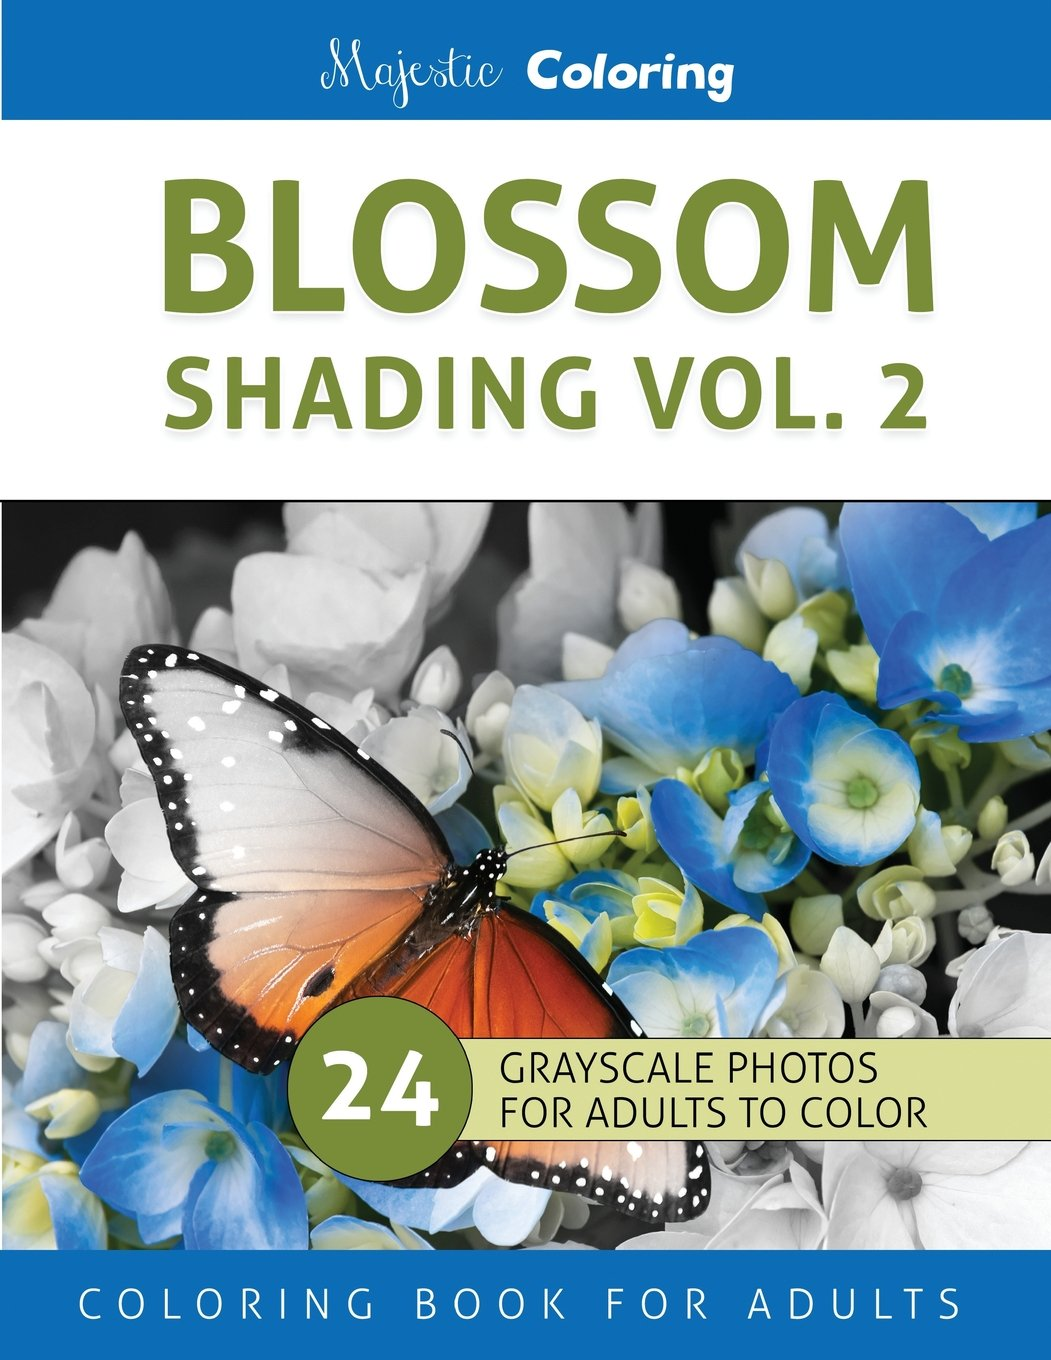 Blossom Shading Vol. 2: Stress Relieving Grayscale Photo Coloring for Adults